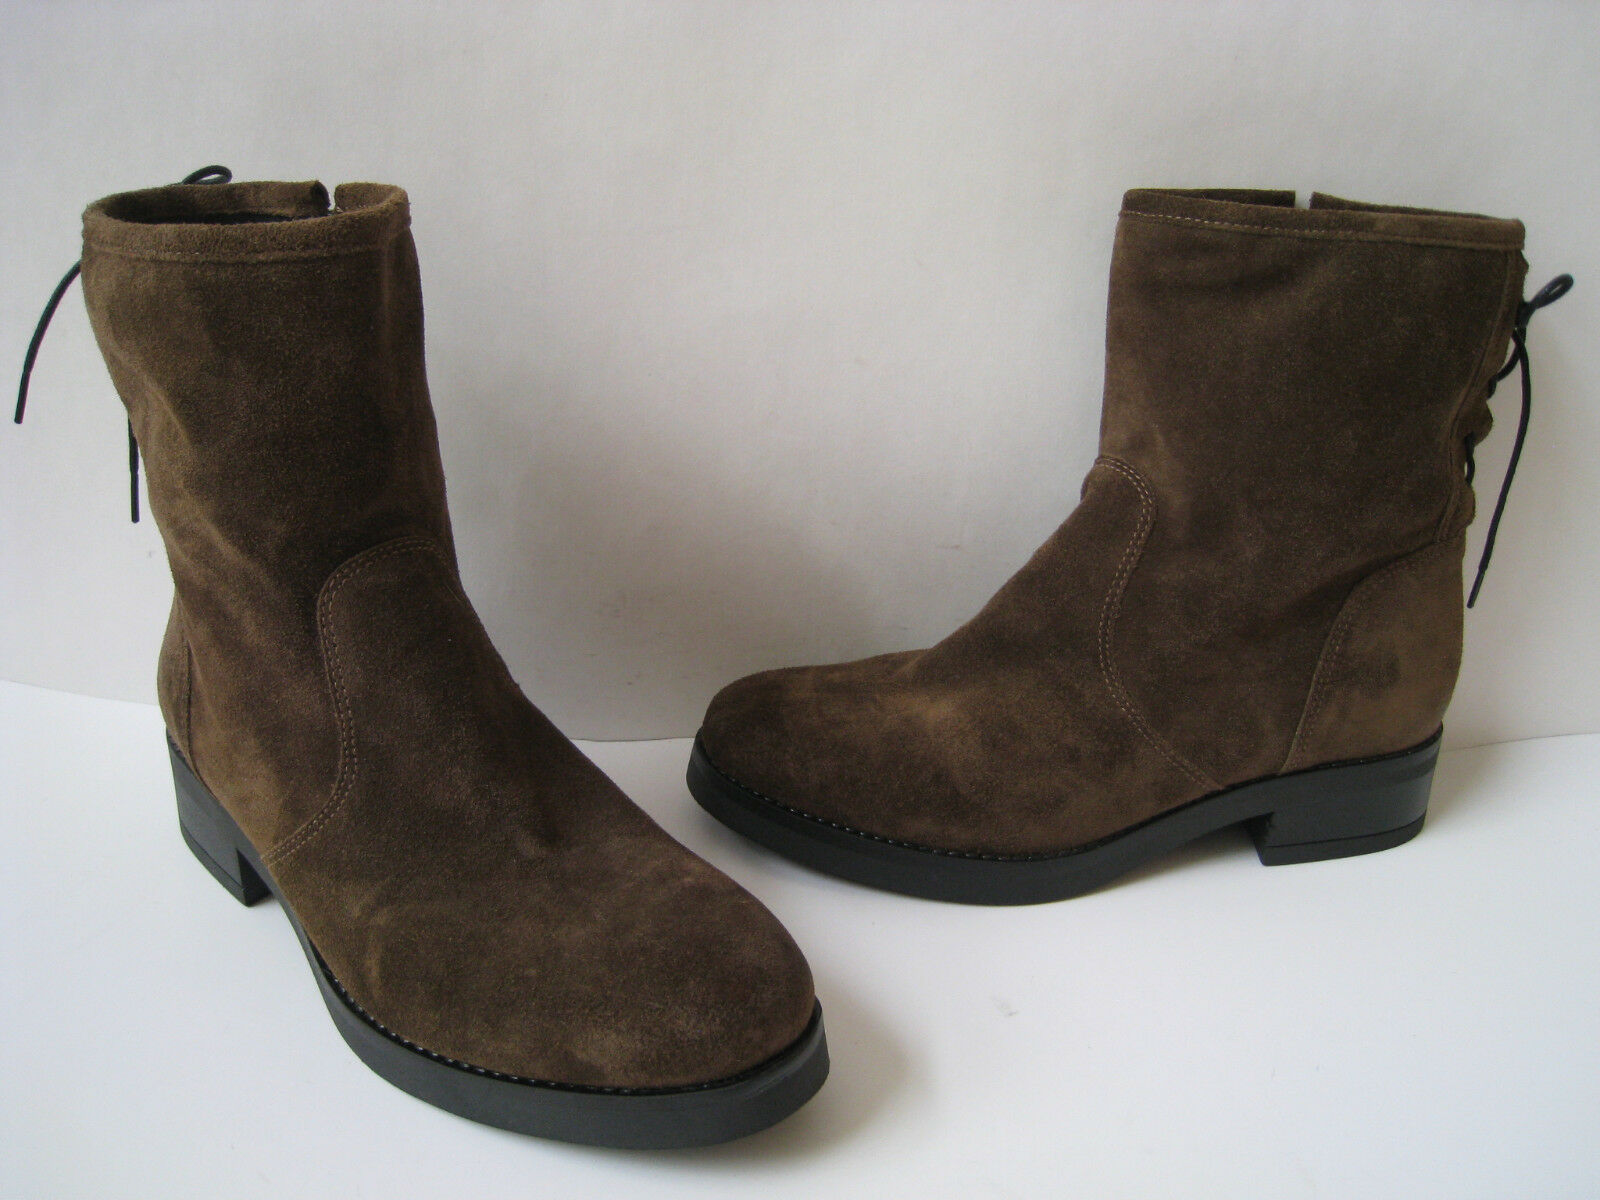 ANNA FIDANZA BROWN SUEDE LEATHER ANKLE BOOT SIZE US 7  MADE IN ITALY